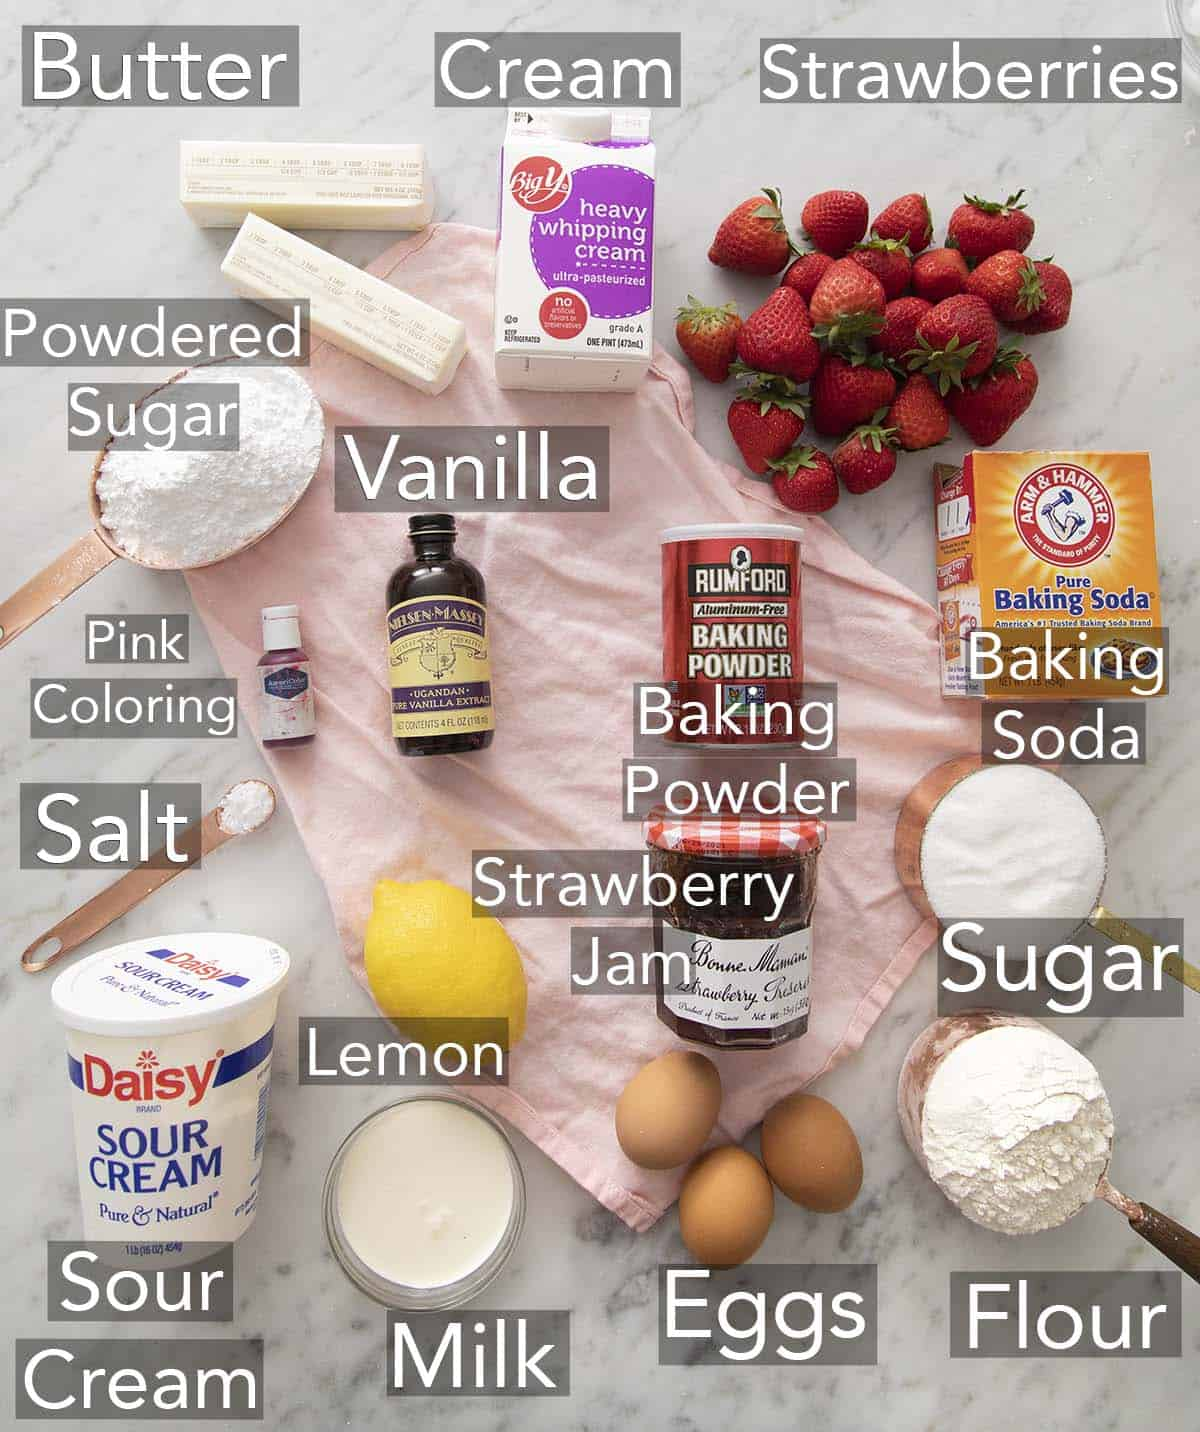 Ingredients for making strawberry cupcakes on a counter.